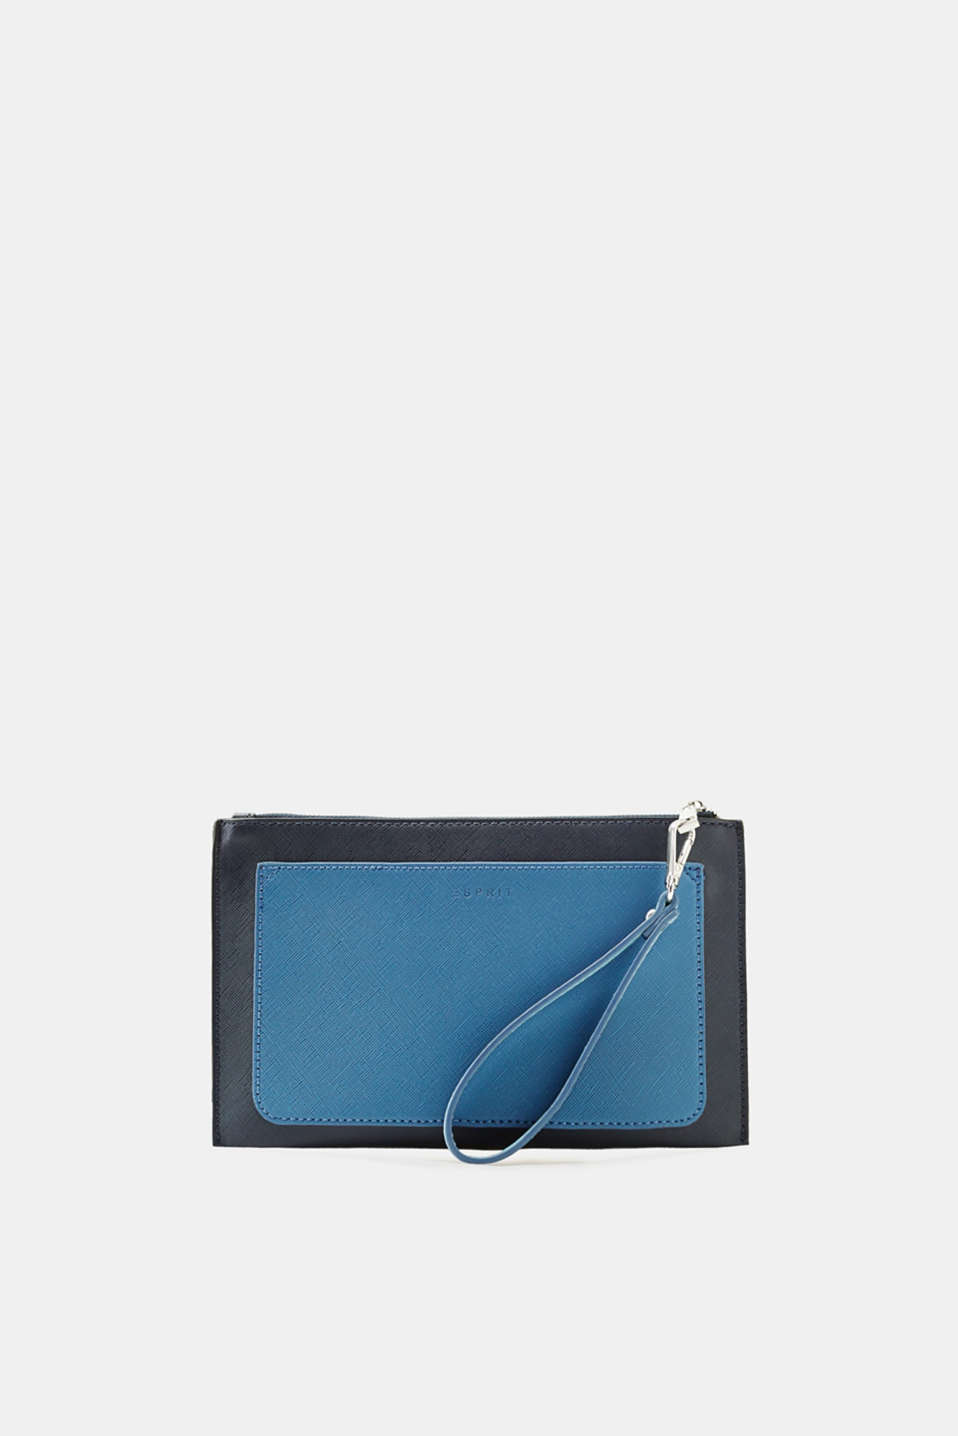 Esprit - Clutch in textured faux leather